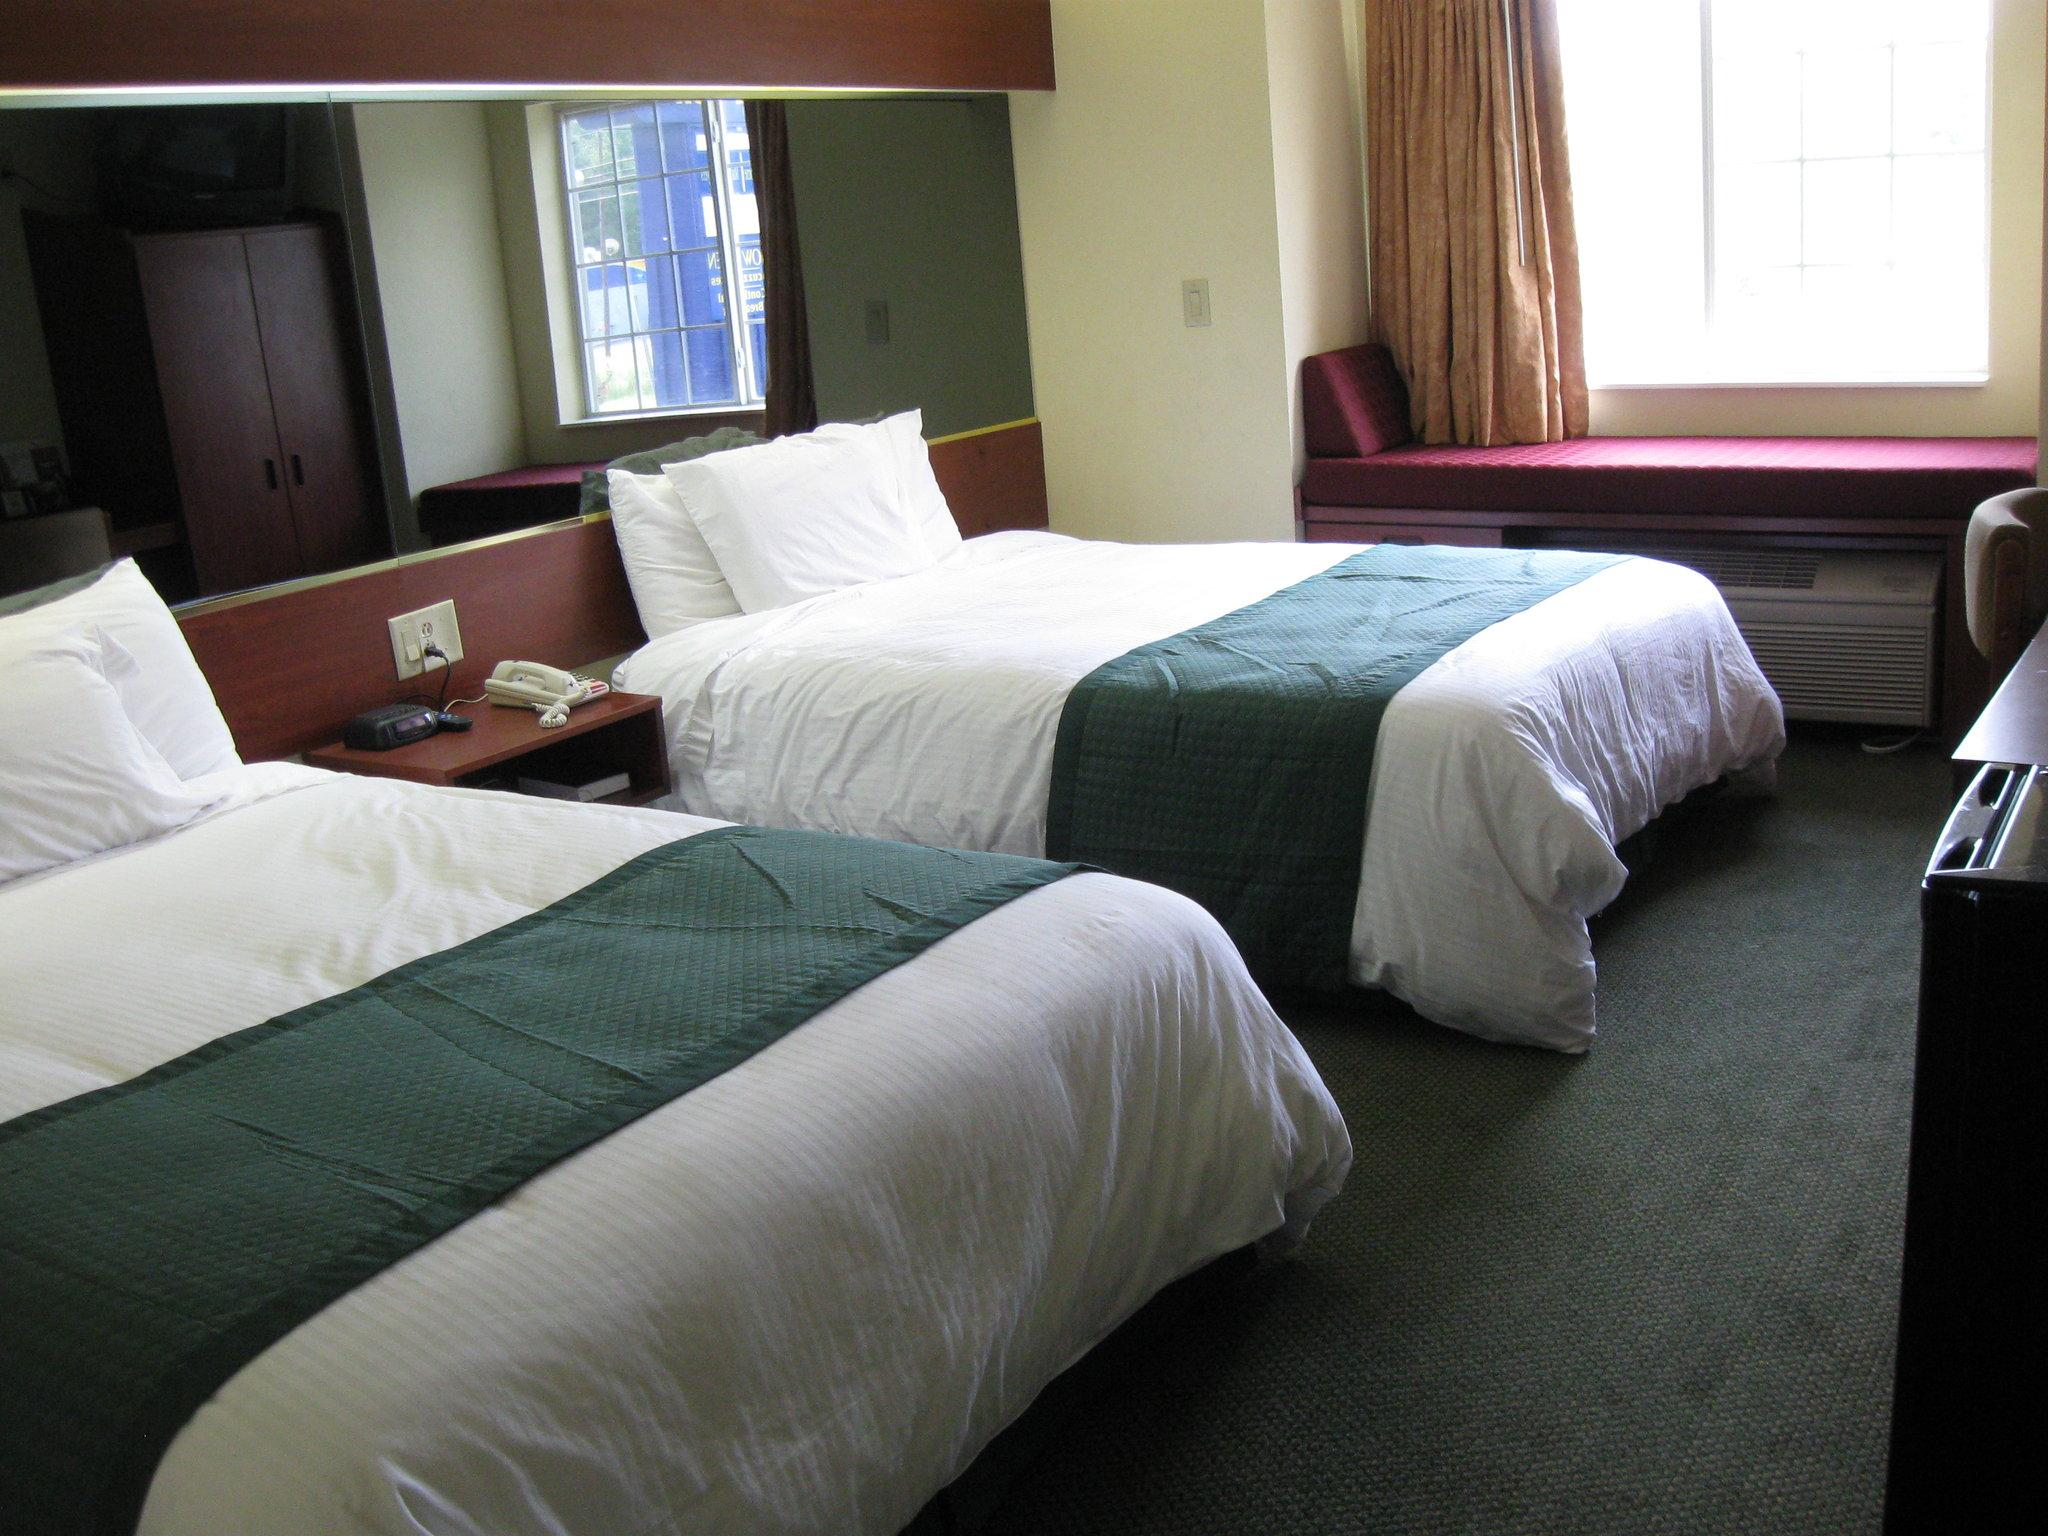 Microtel Inn & Suites by Wyndham Thomasville/High Point/Lexington